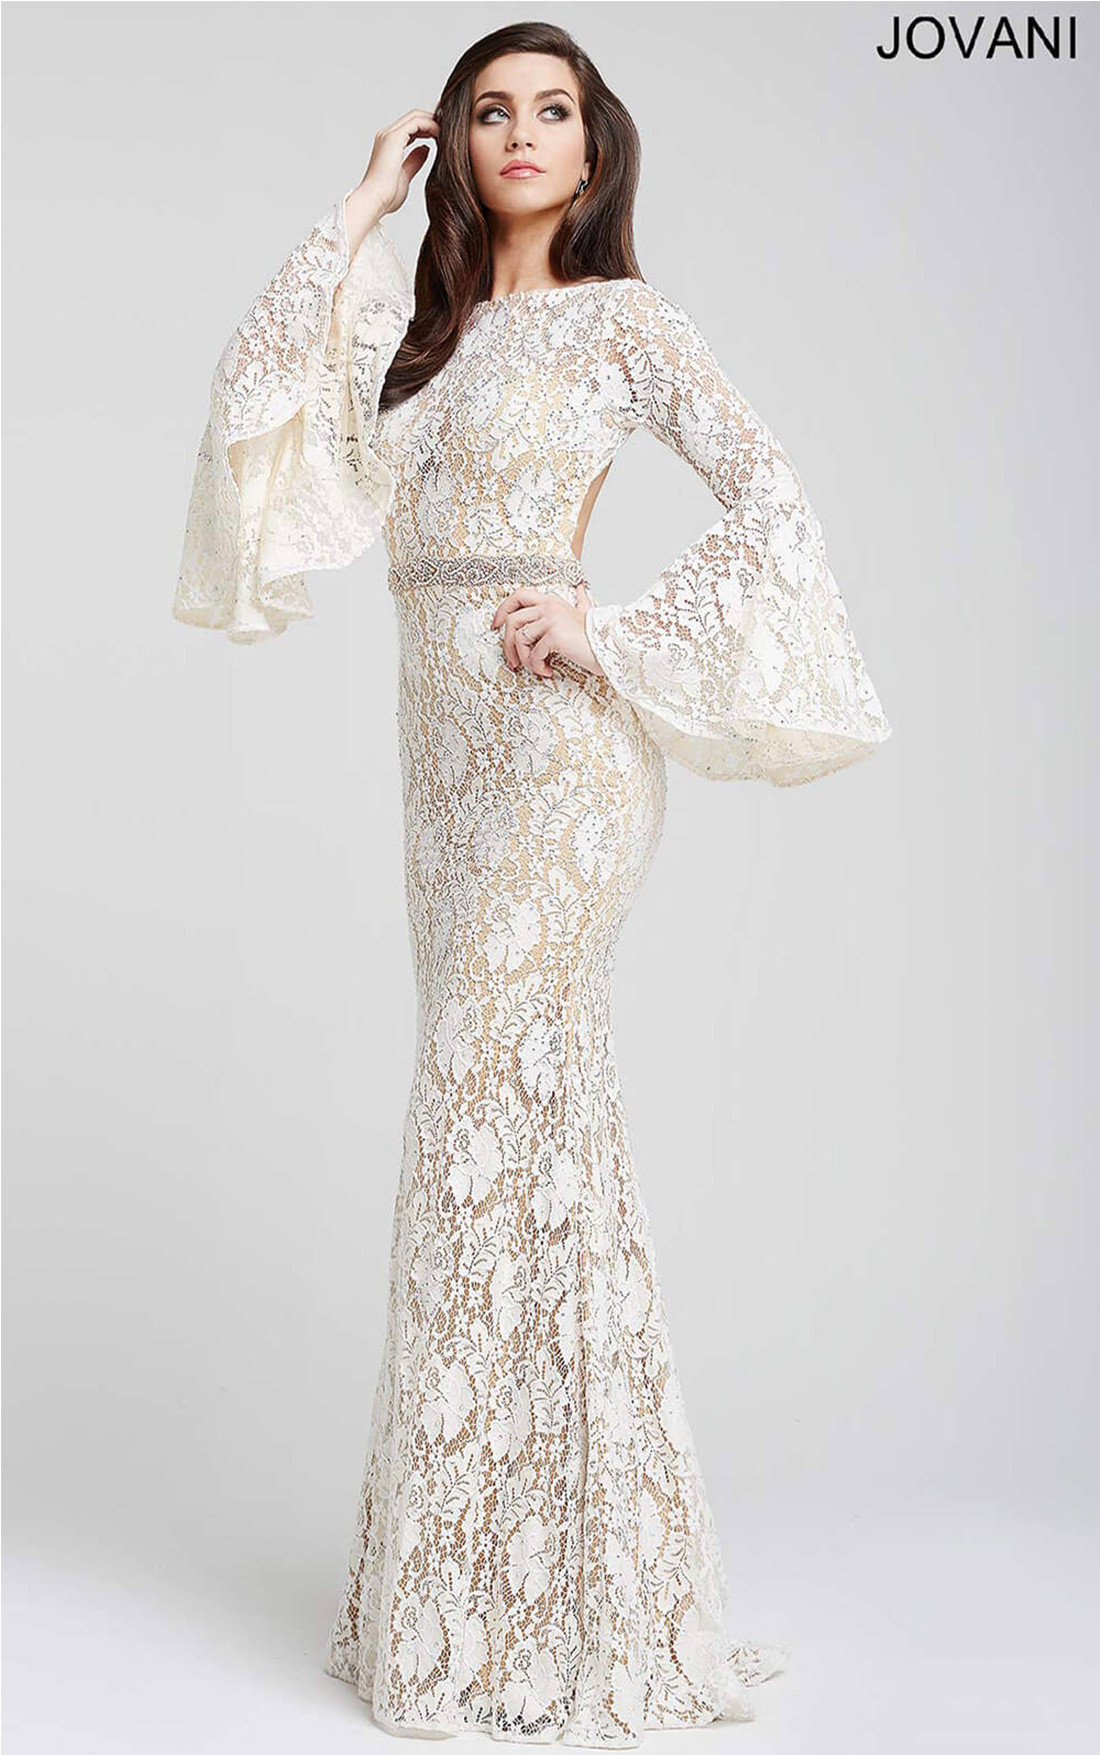 Jovani Dresses | Womens Off White Bell Sleeve Evening Dress ...